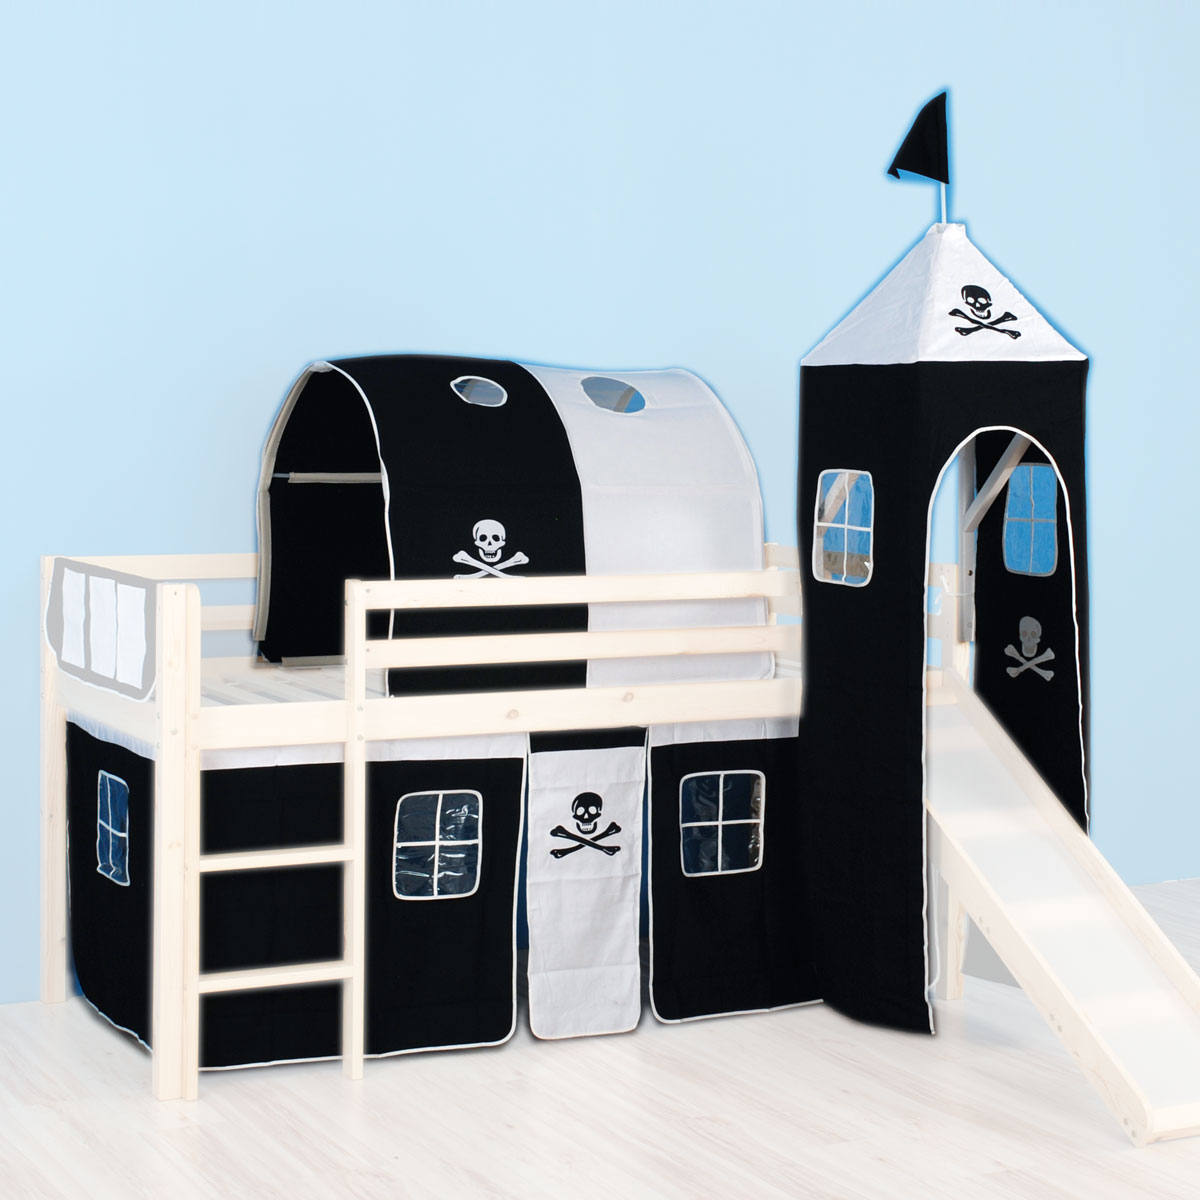 stoffset jack incl turm und tunnel f r hochbett spielbett rutschenbett ebay. Black Bedroom Furniture Sets. Home Design Ideas